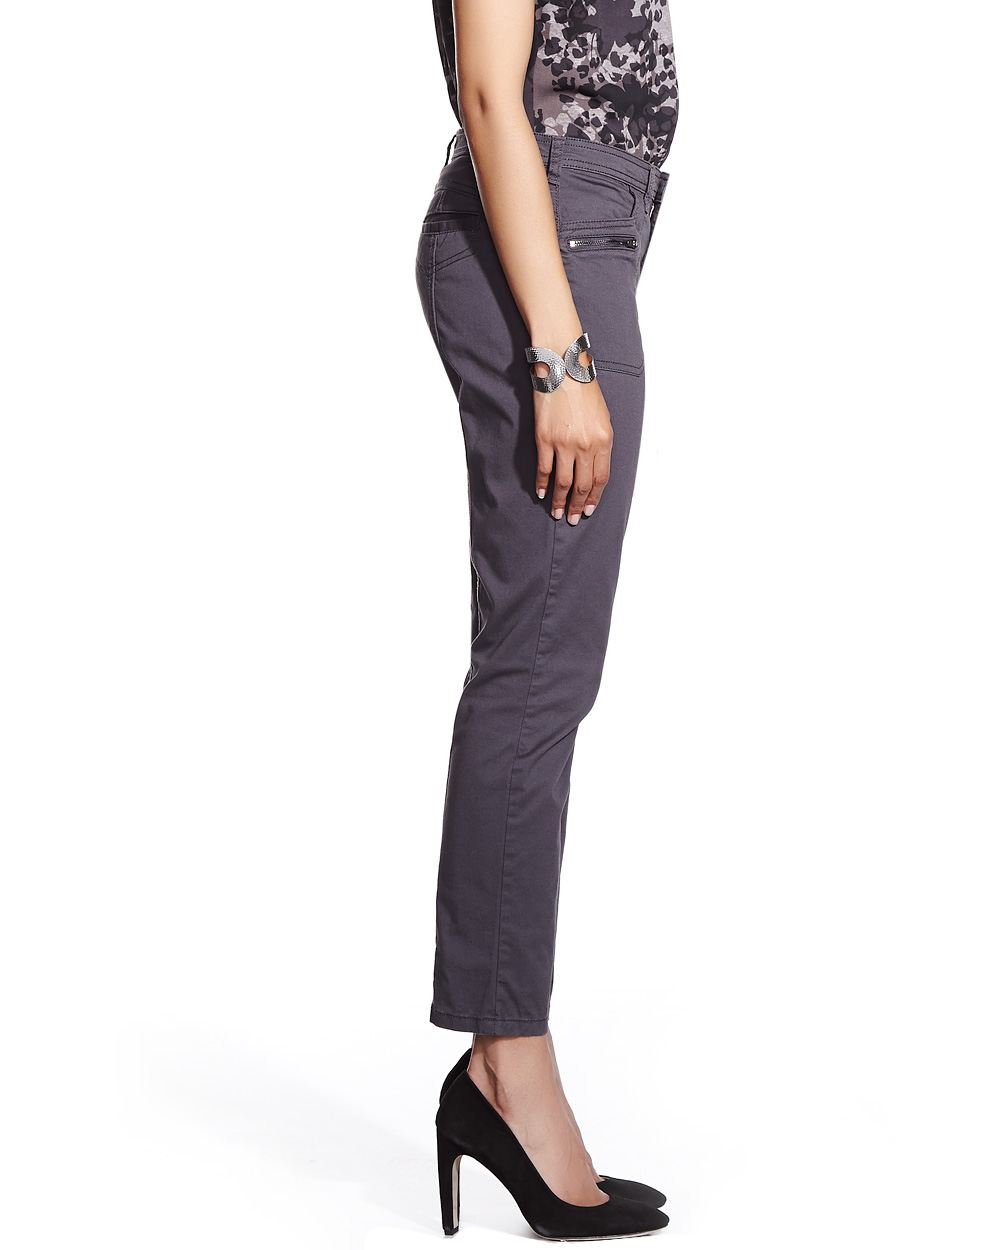 Shop Online at coolvloadx4.ga for the Latest Trouser Pants for Petite Women. FREE SHIPPING AVAILABLE! Macy's Presents: The Edit- A curated mix of fashion and inspiration Check It Out. MICHAEL Michael Kors Miranda Stretch Slim-Leg Pants in Regular & Petite Sizes.